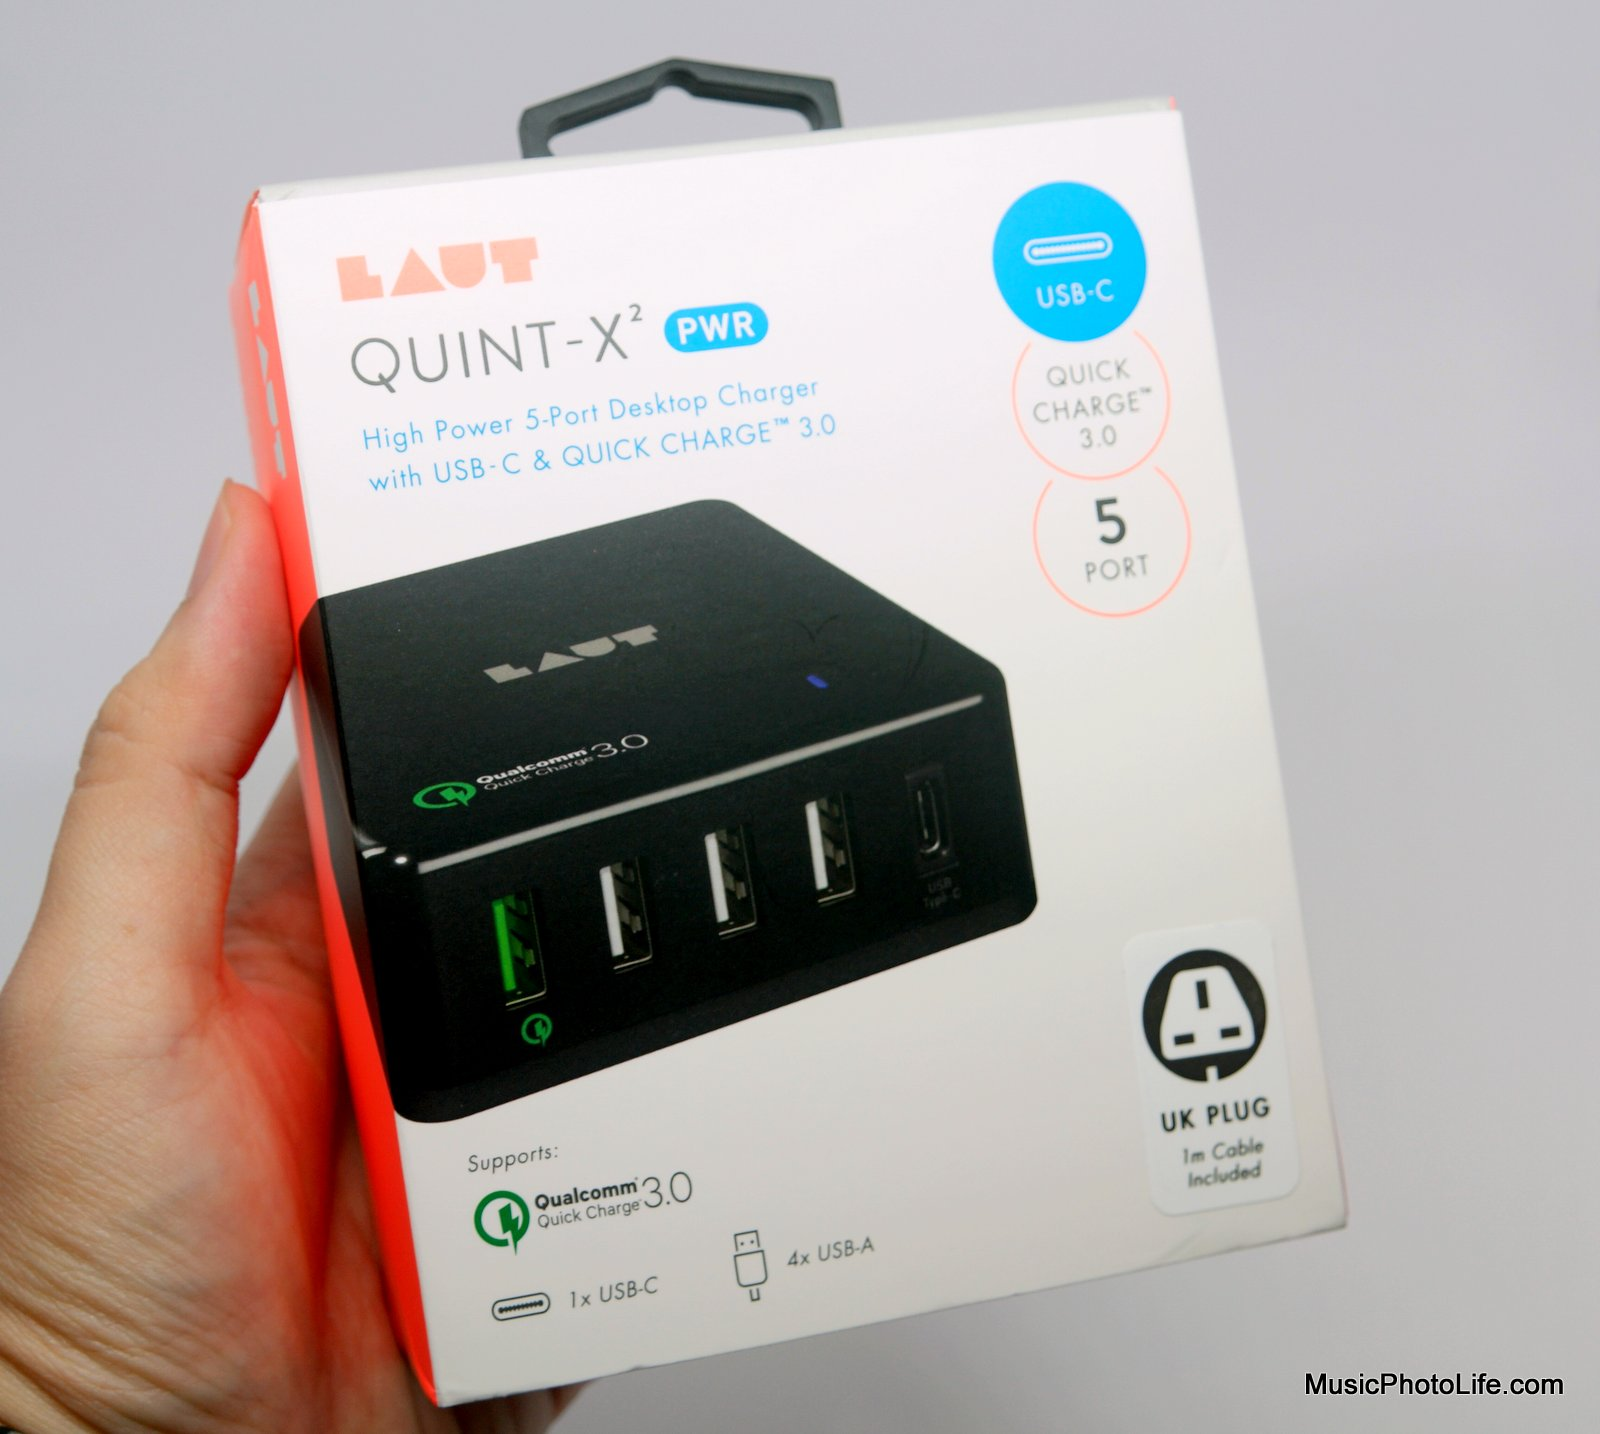 LAUT QUINT-X2 USB charger review by musicphotolife.com